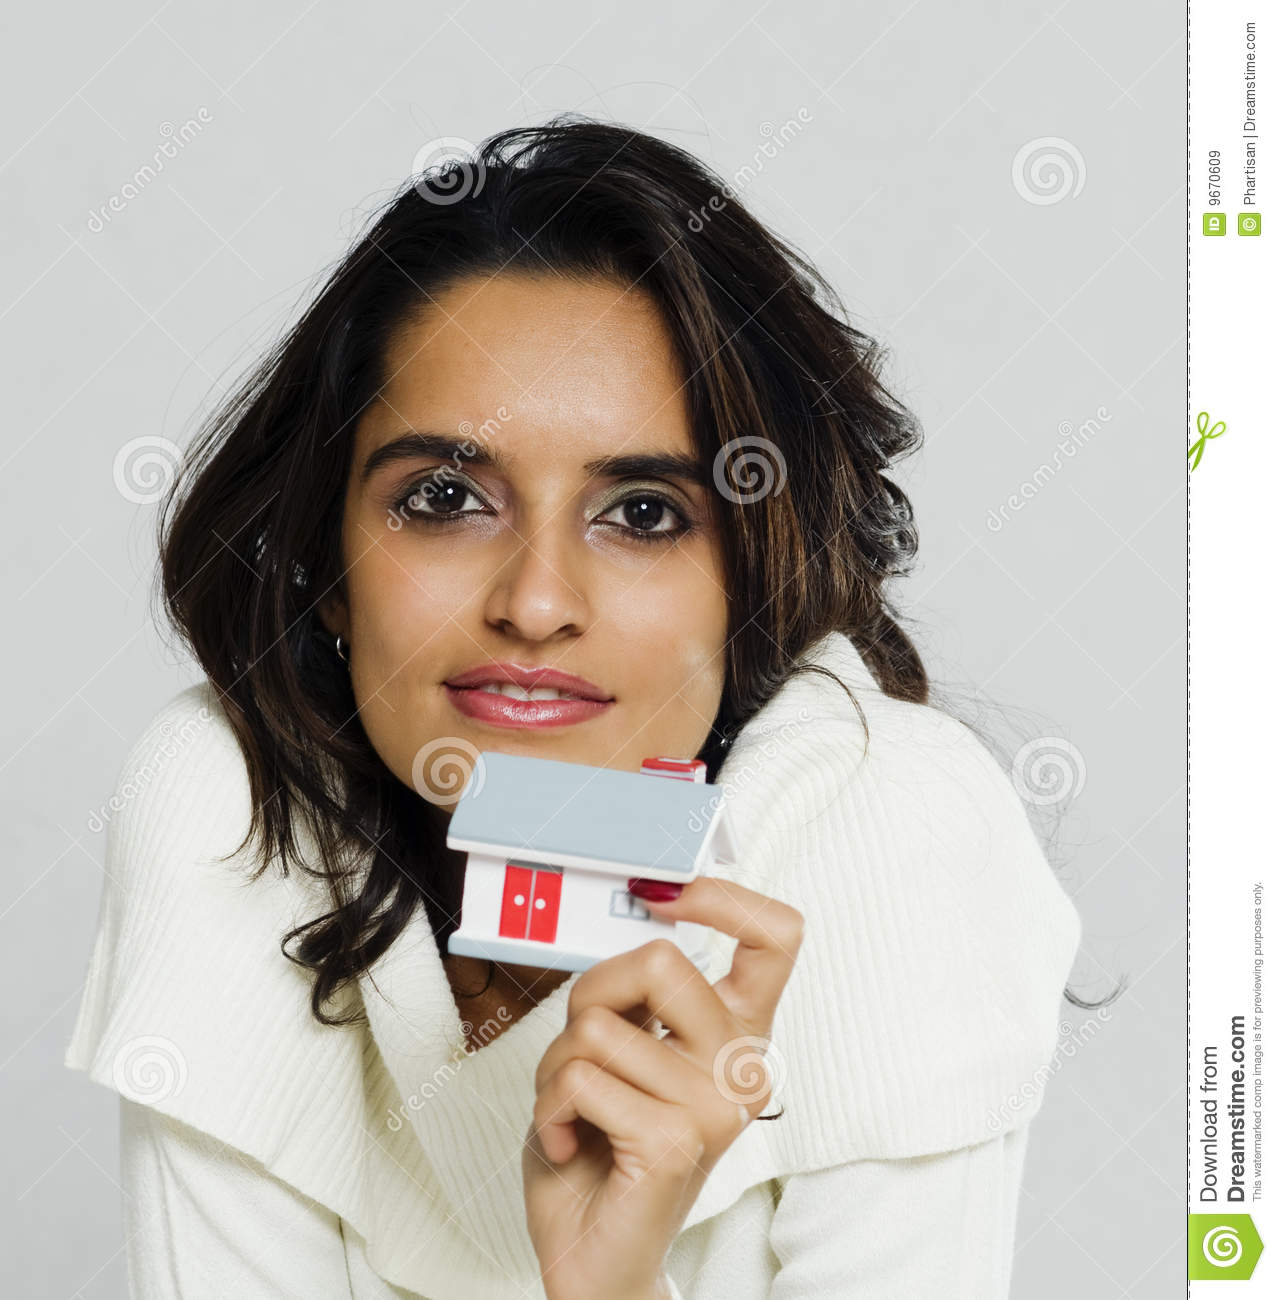 Small model stock photo. Image of face, makeup, image